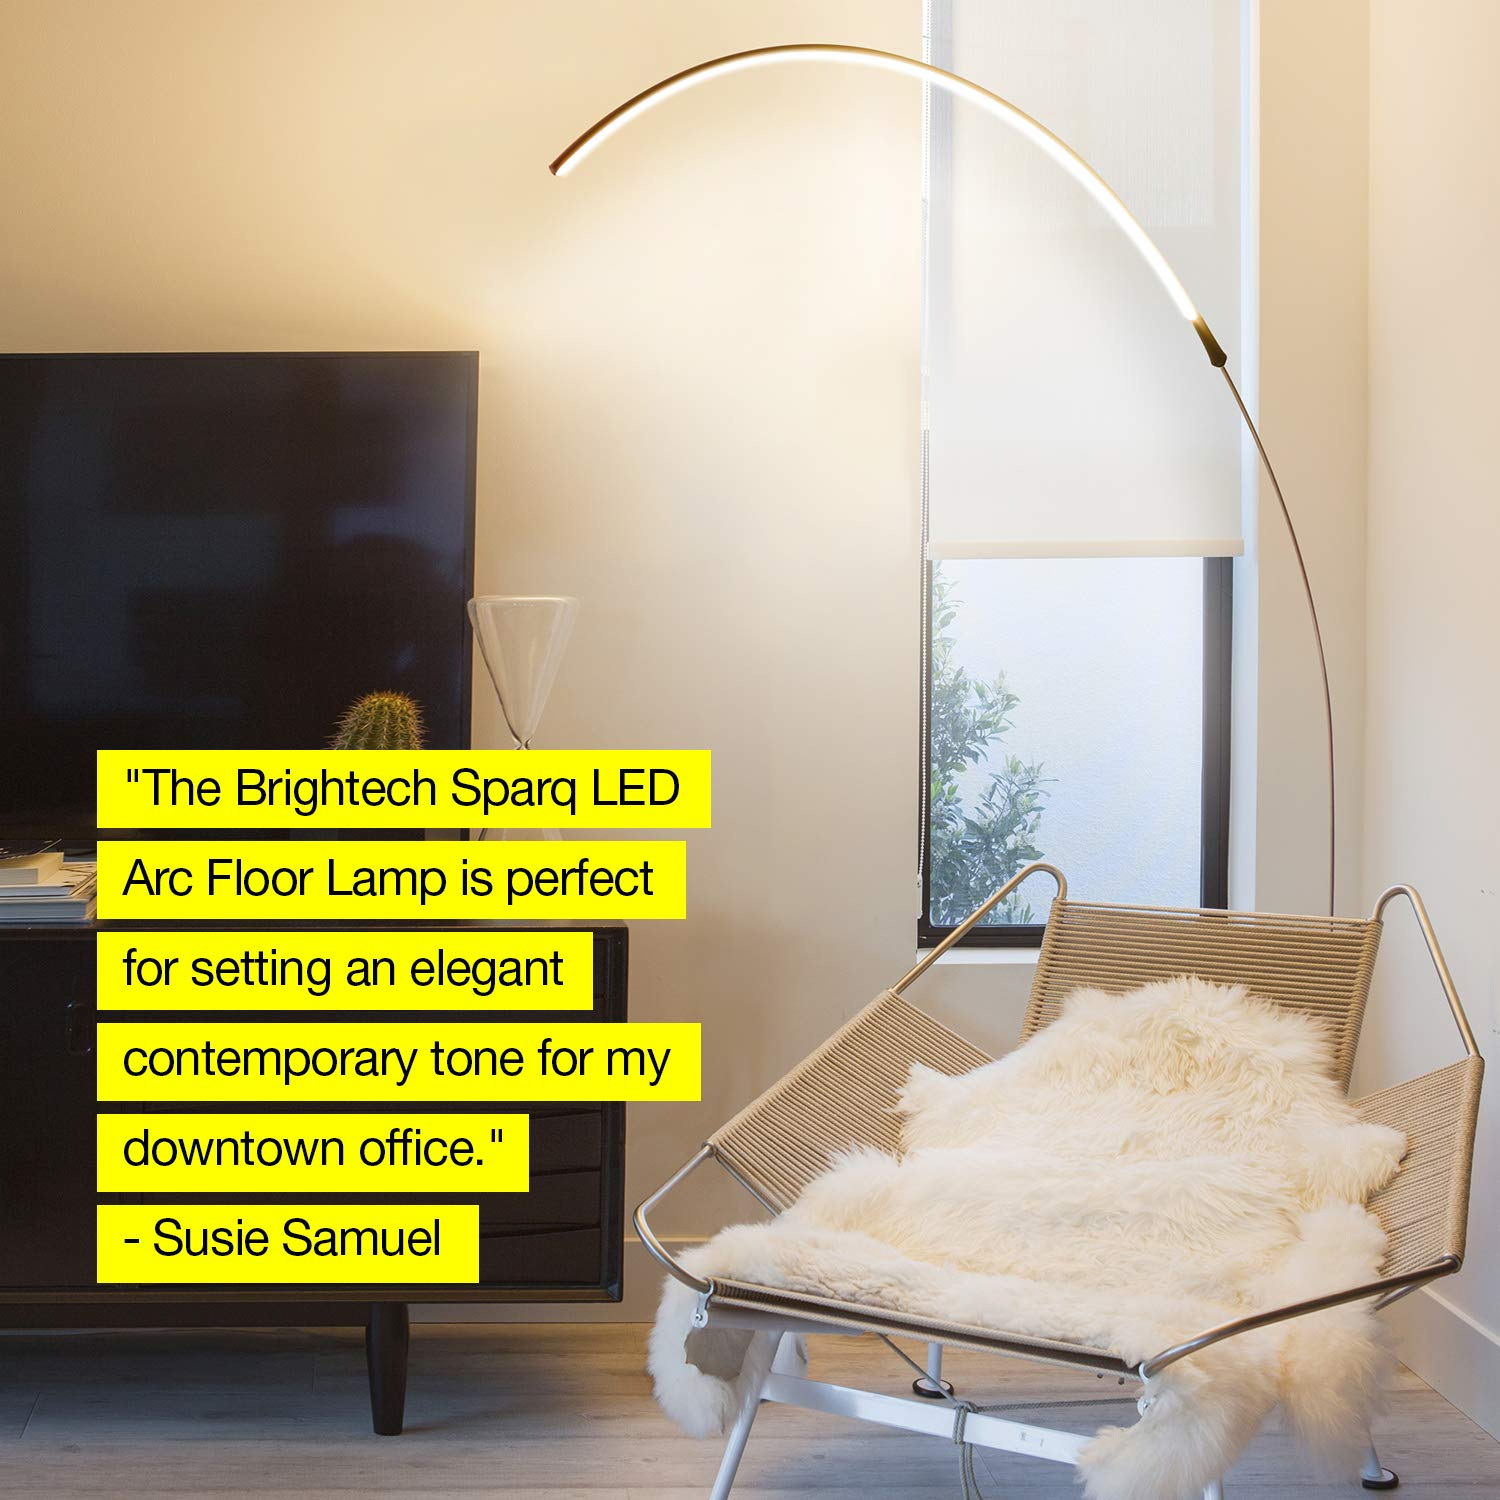 Brightech Sparq Arc LED Floor Lamp - Bright Standing Lamp for Living Room - Modern Arched Light for Behind the Couch - Dimmable Pole Lamp- Silver by Brightech (Image #9)